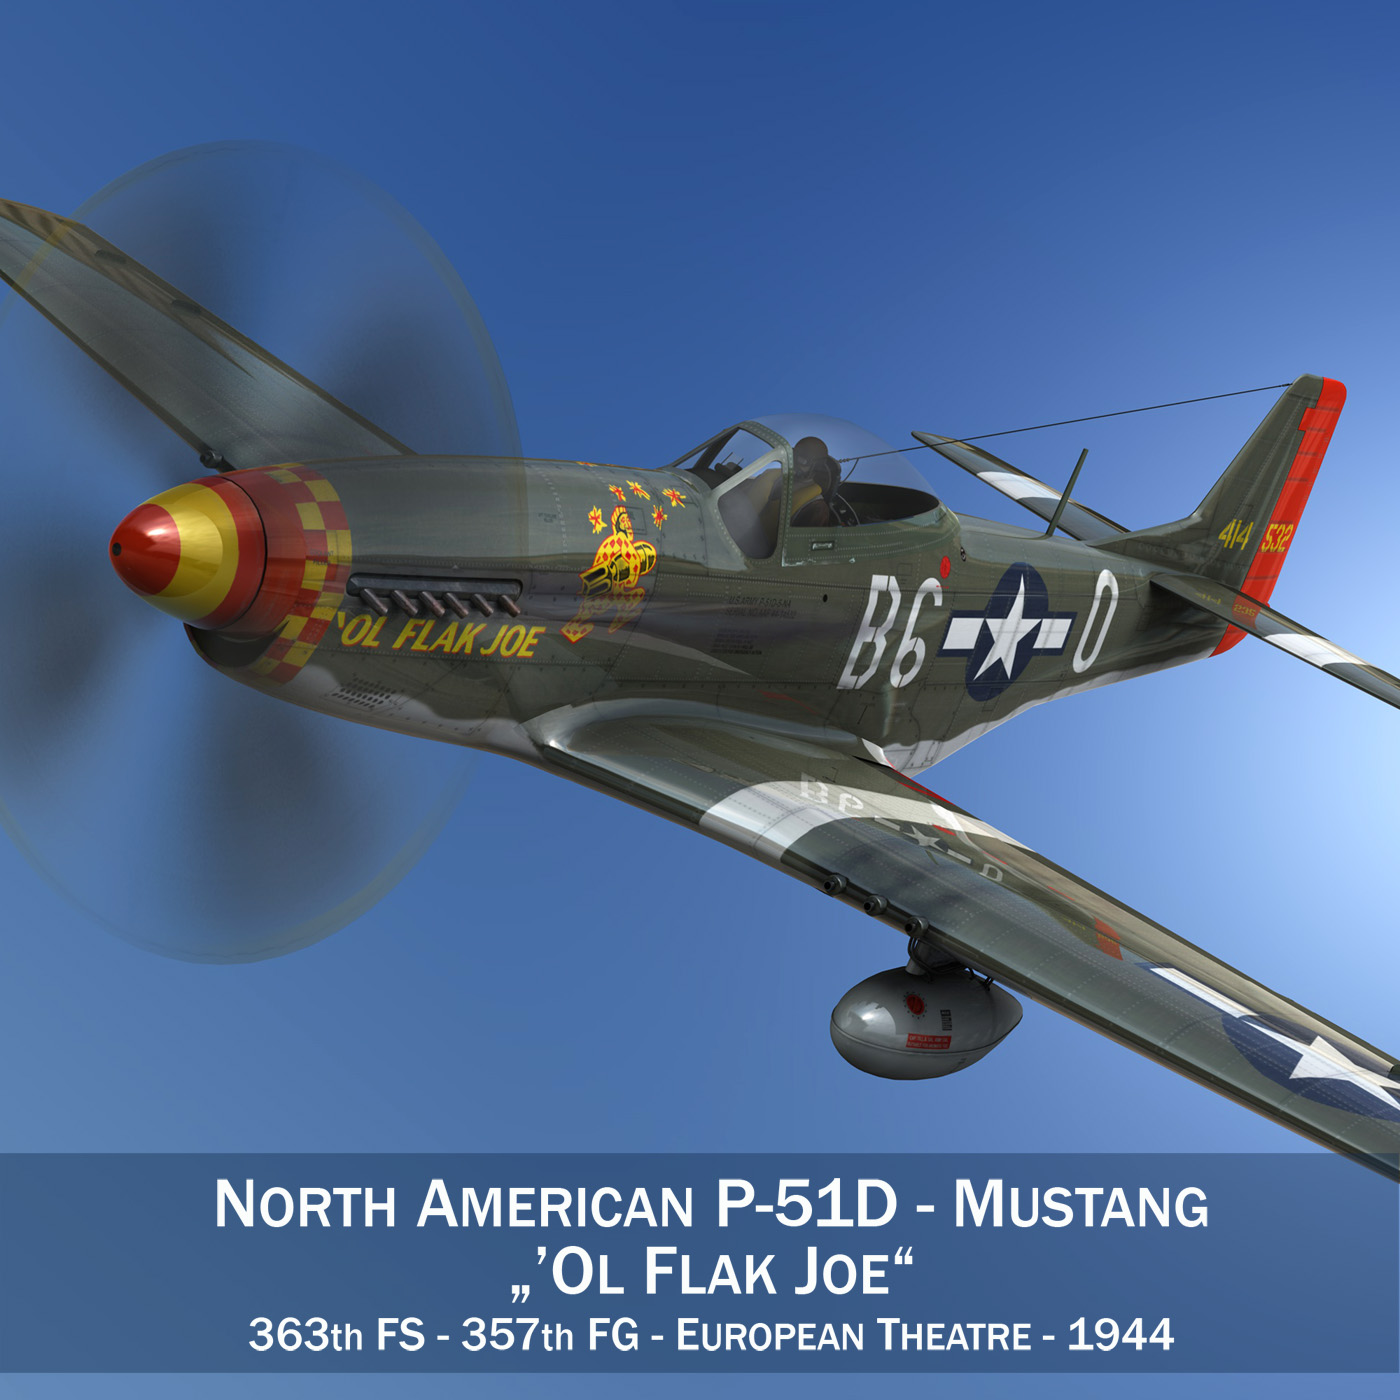 north american p-51d – ol flak joe 3d model 3ds fbx c4d lwo obj 280100